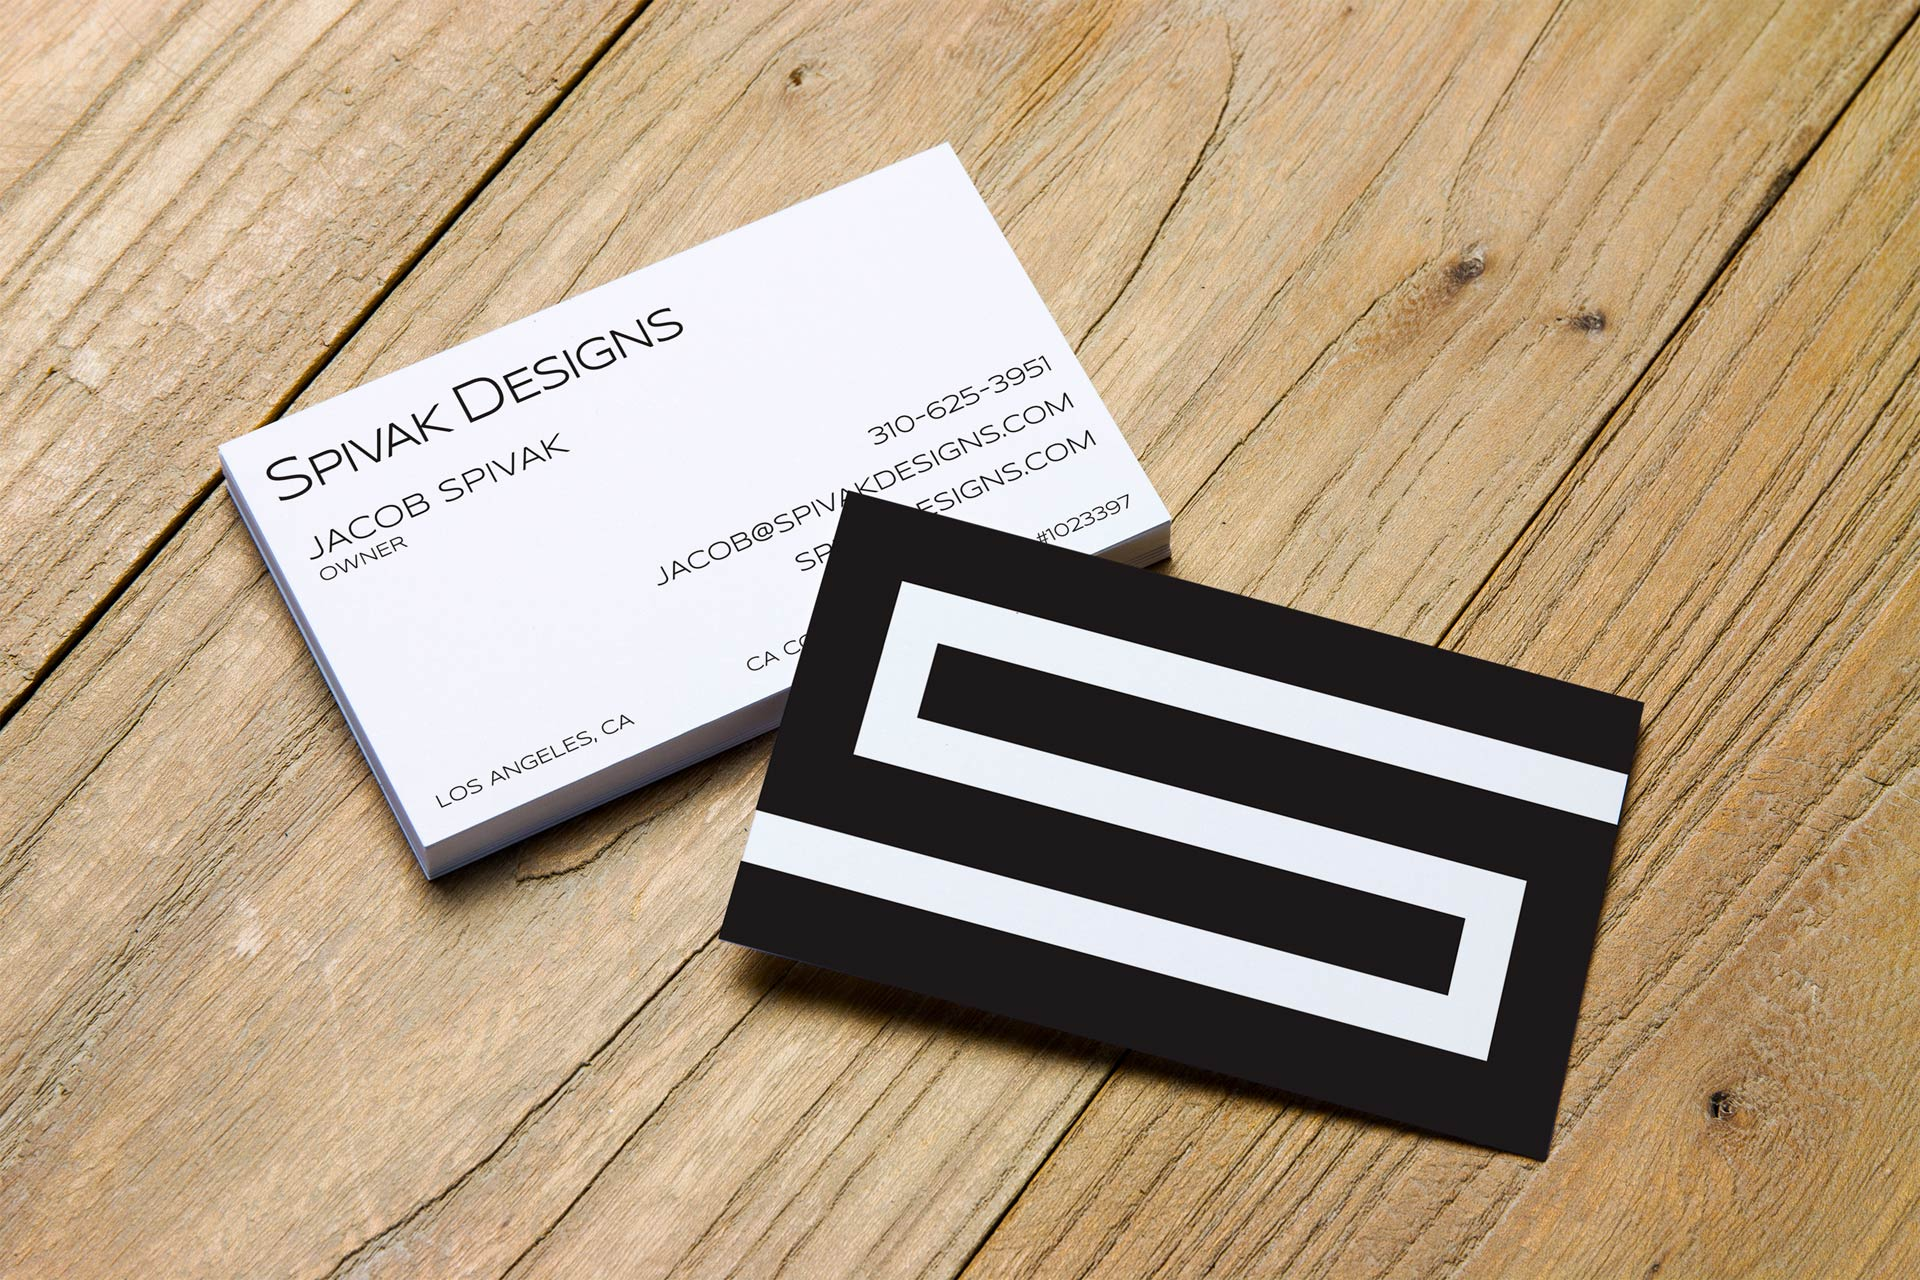 Business card design and logo for Spivak Designs